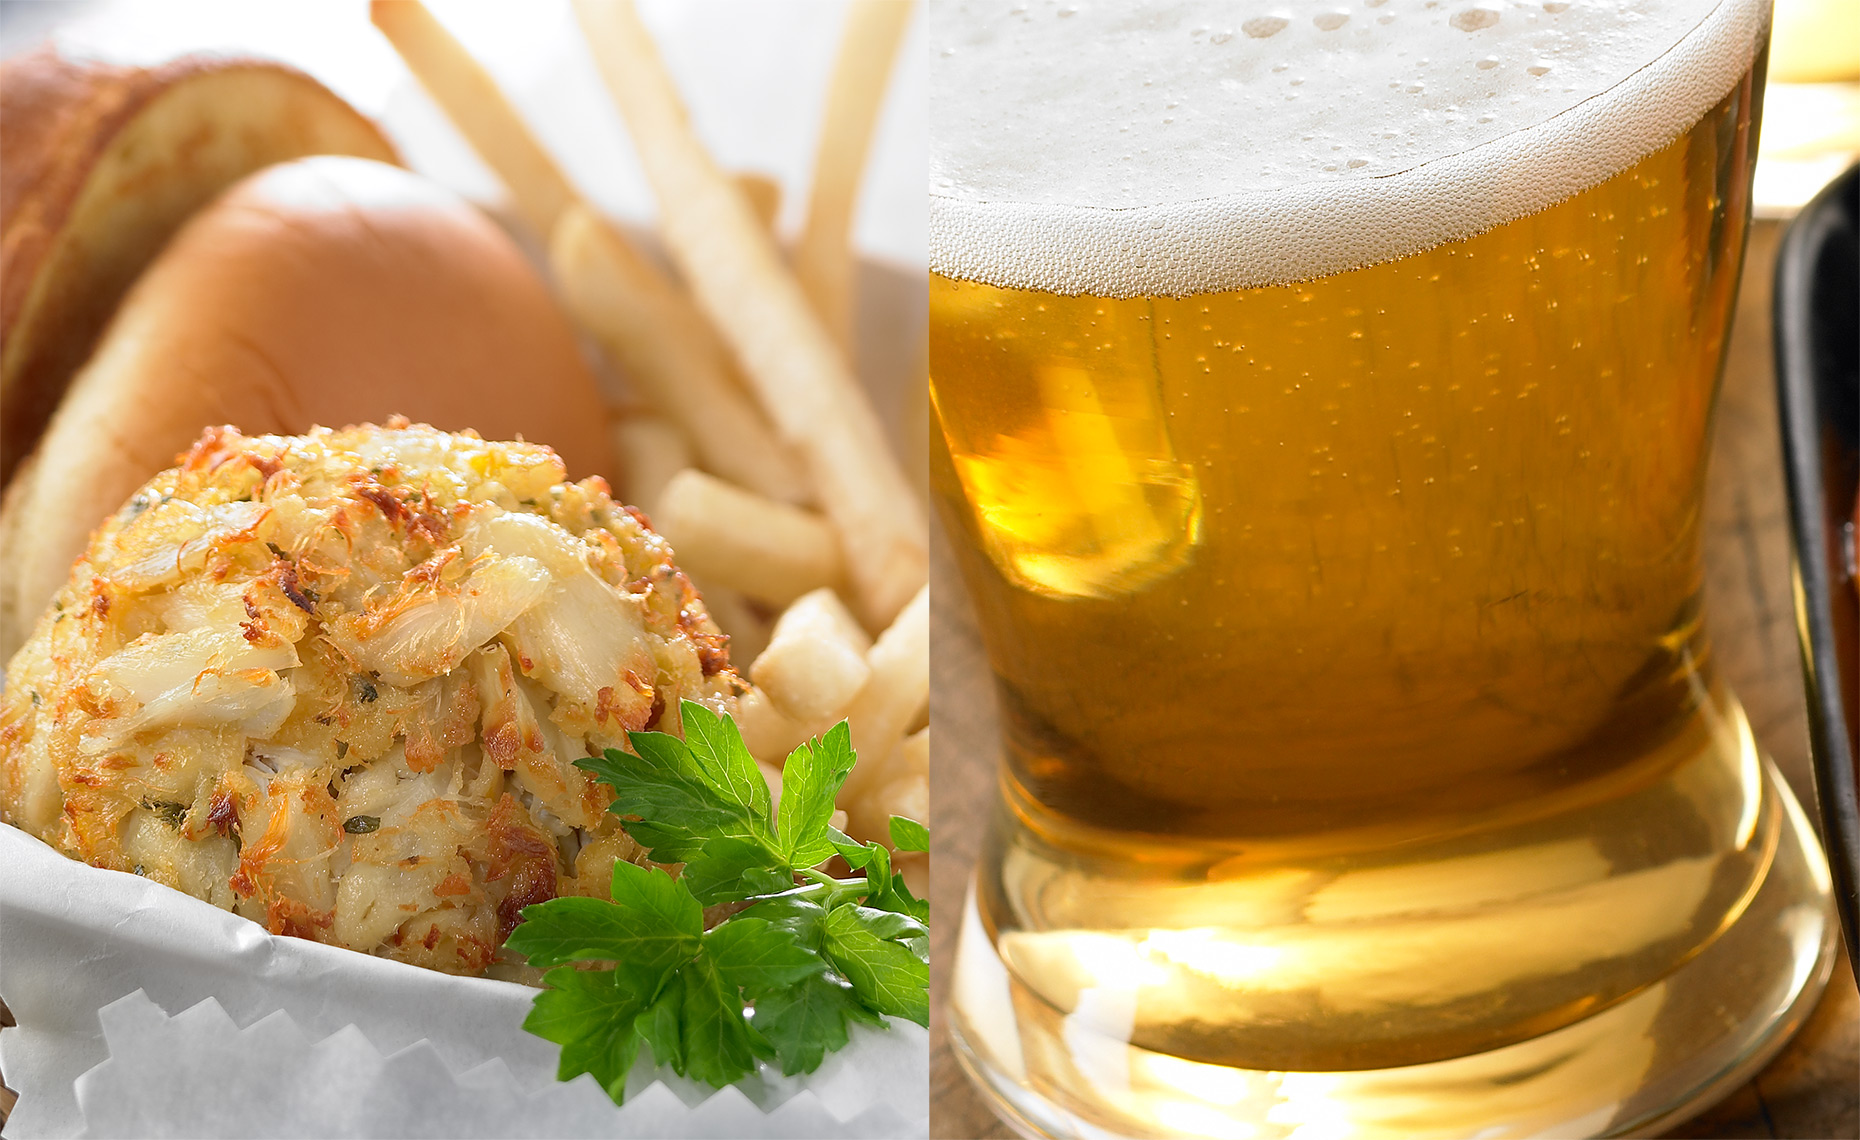 Fast Food Photographer, Burger Photography, Pizza Photography | Pohuski Studios,  Crab Cake Beer